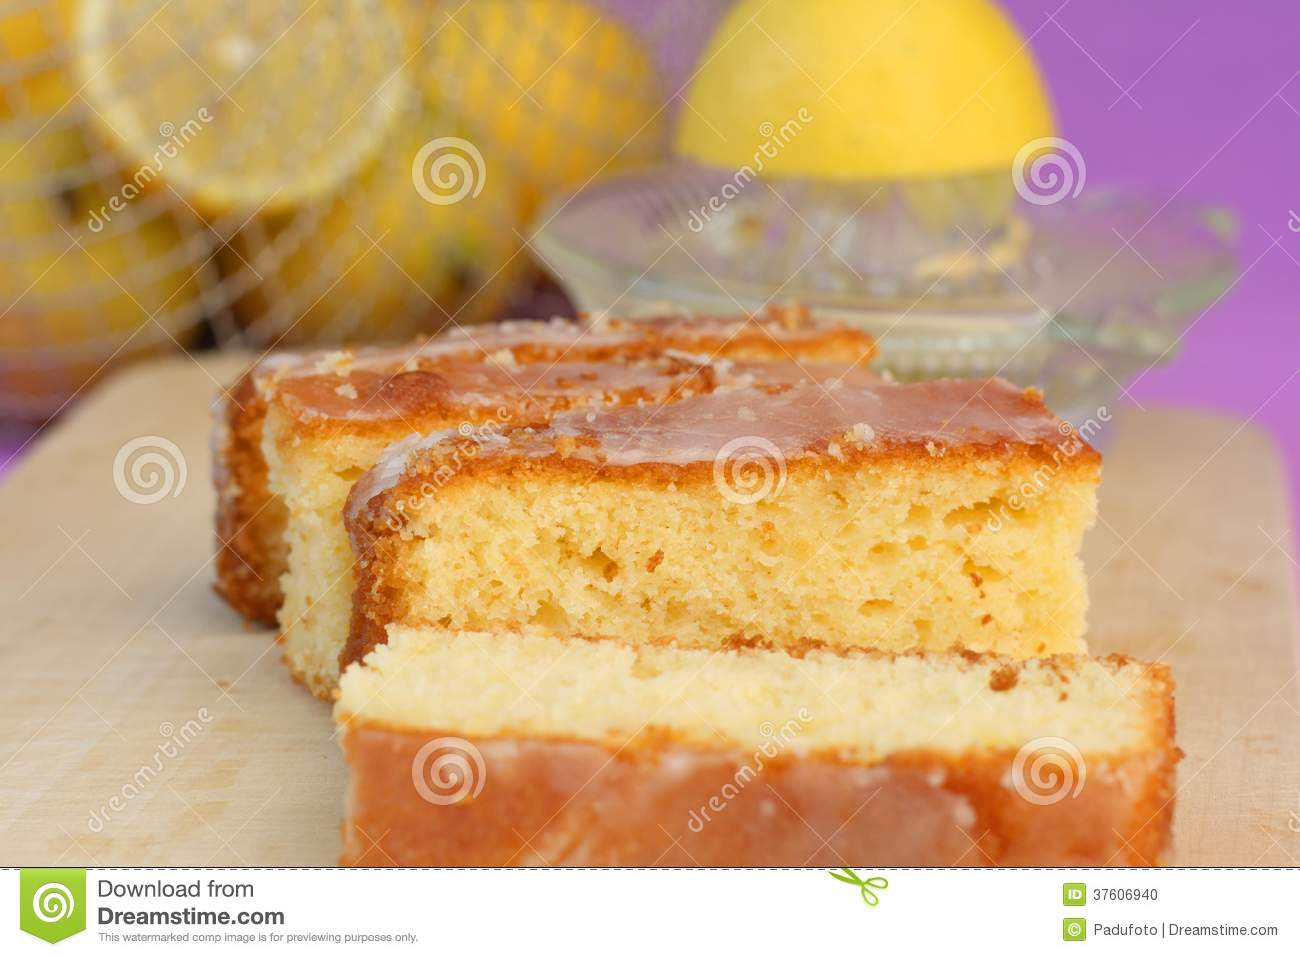 Lemon Pound Cake Using Lemon Curd